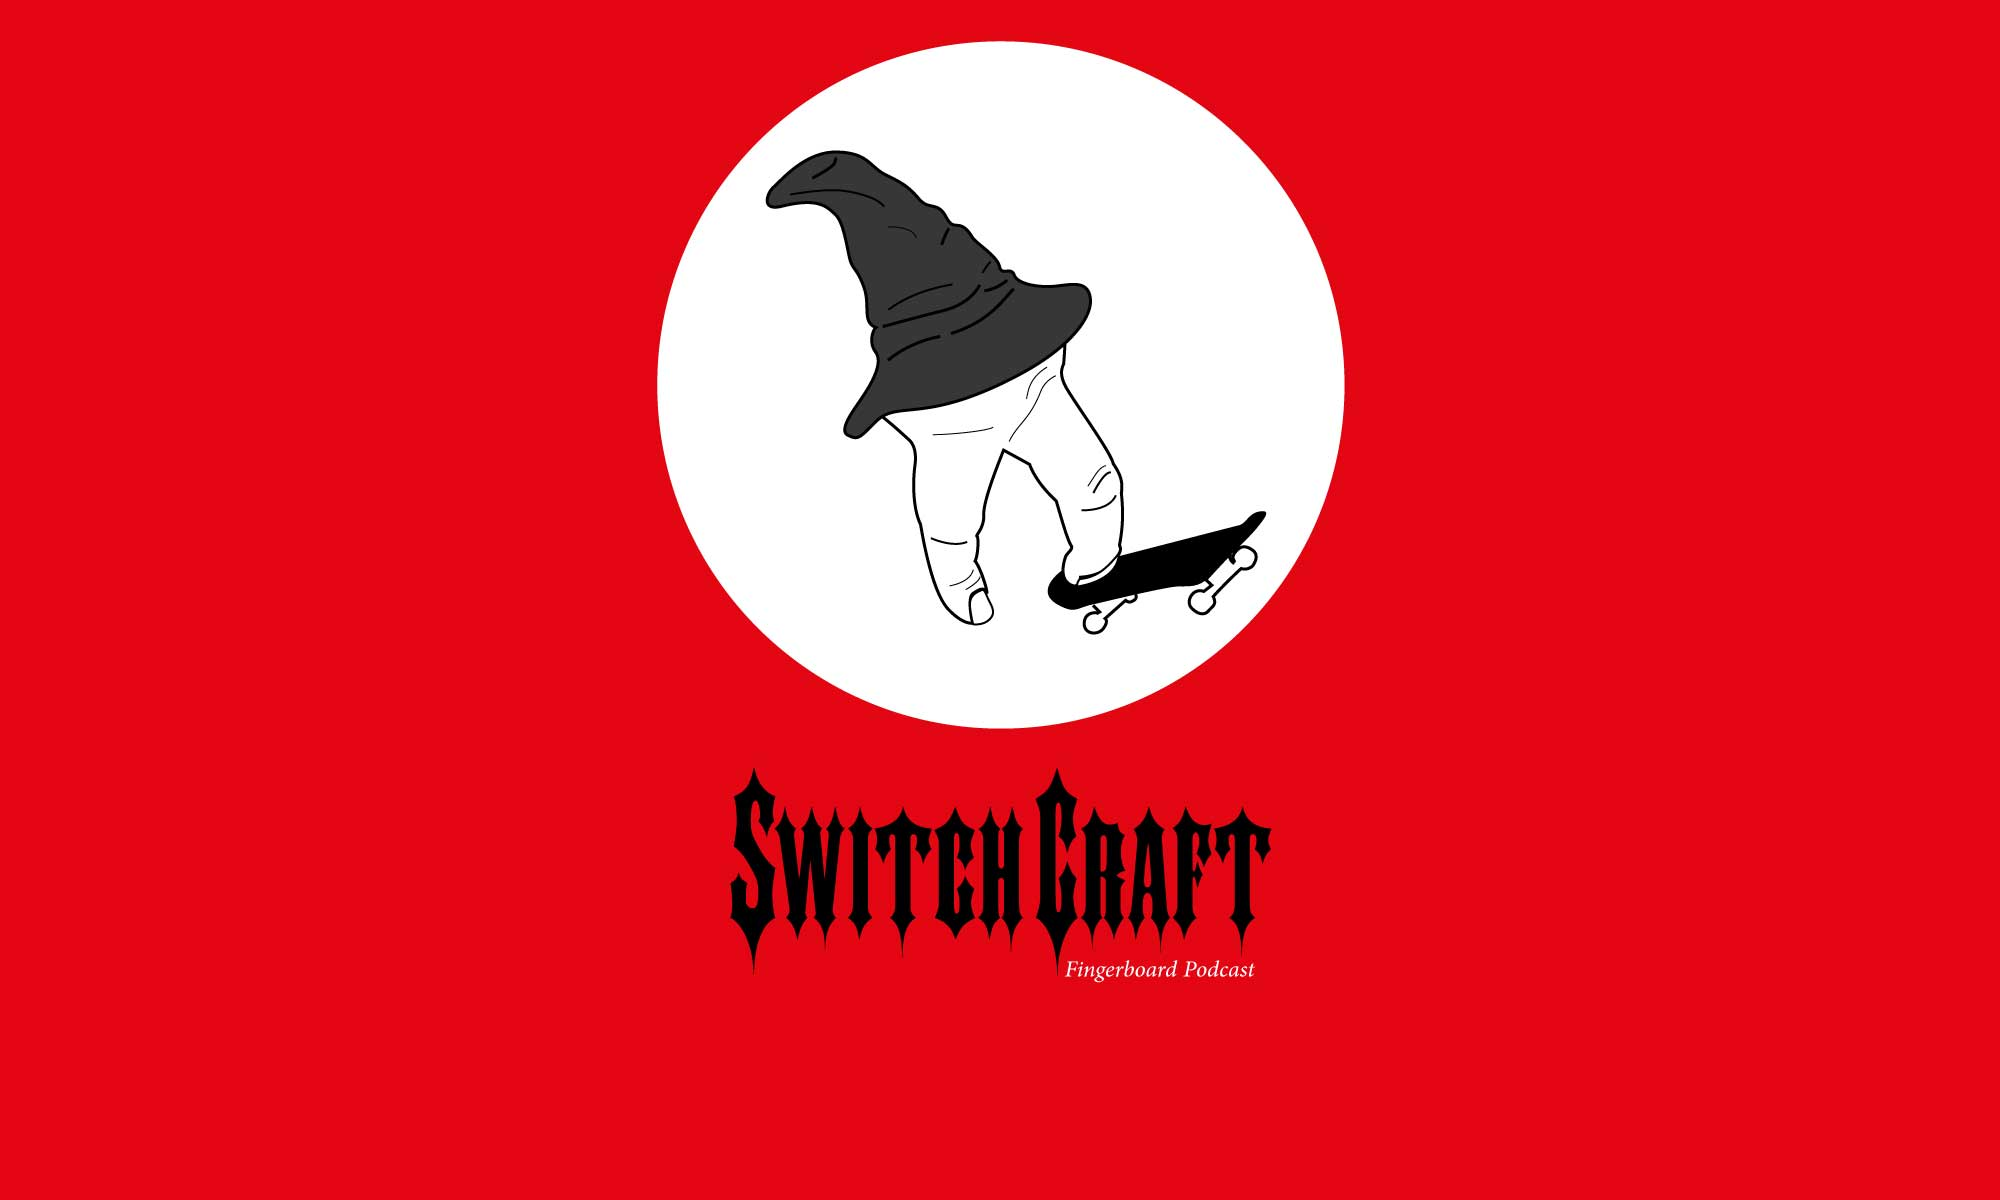 switchcraft podcast